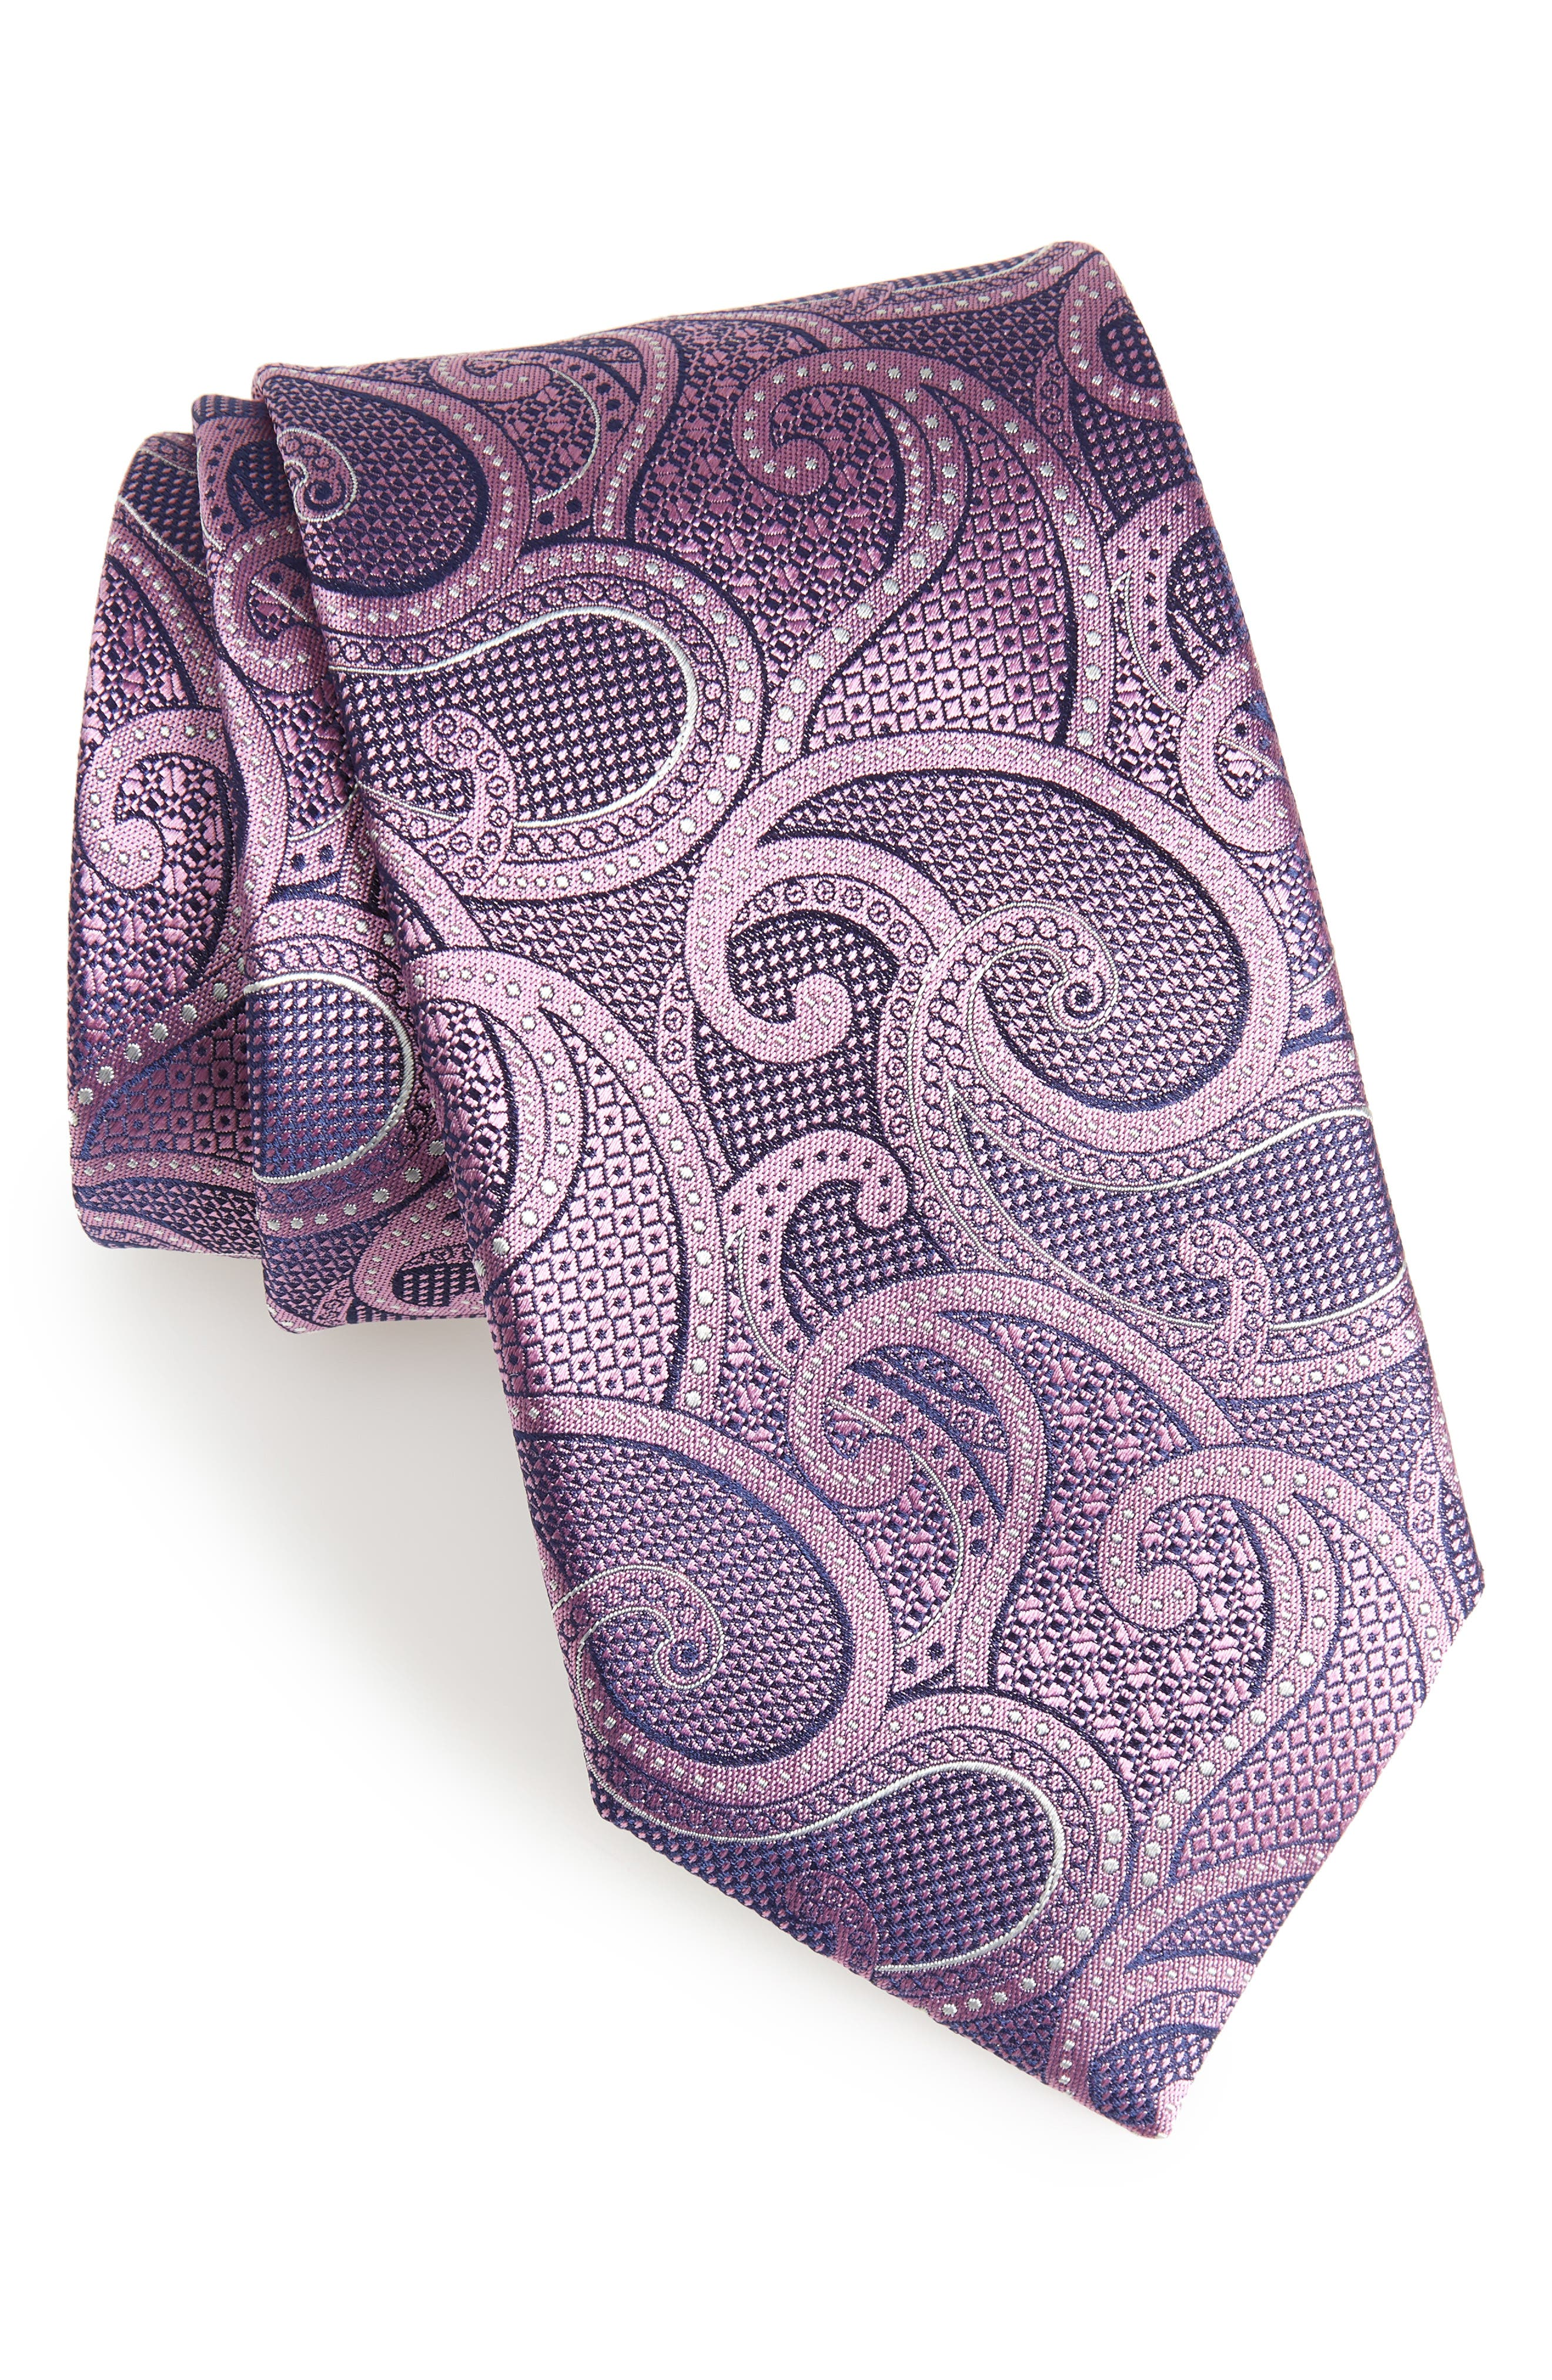 Paisley Silk Tie,                         Main,                         color, Dark Pink